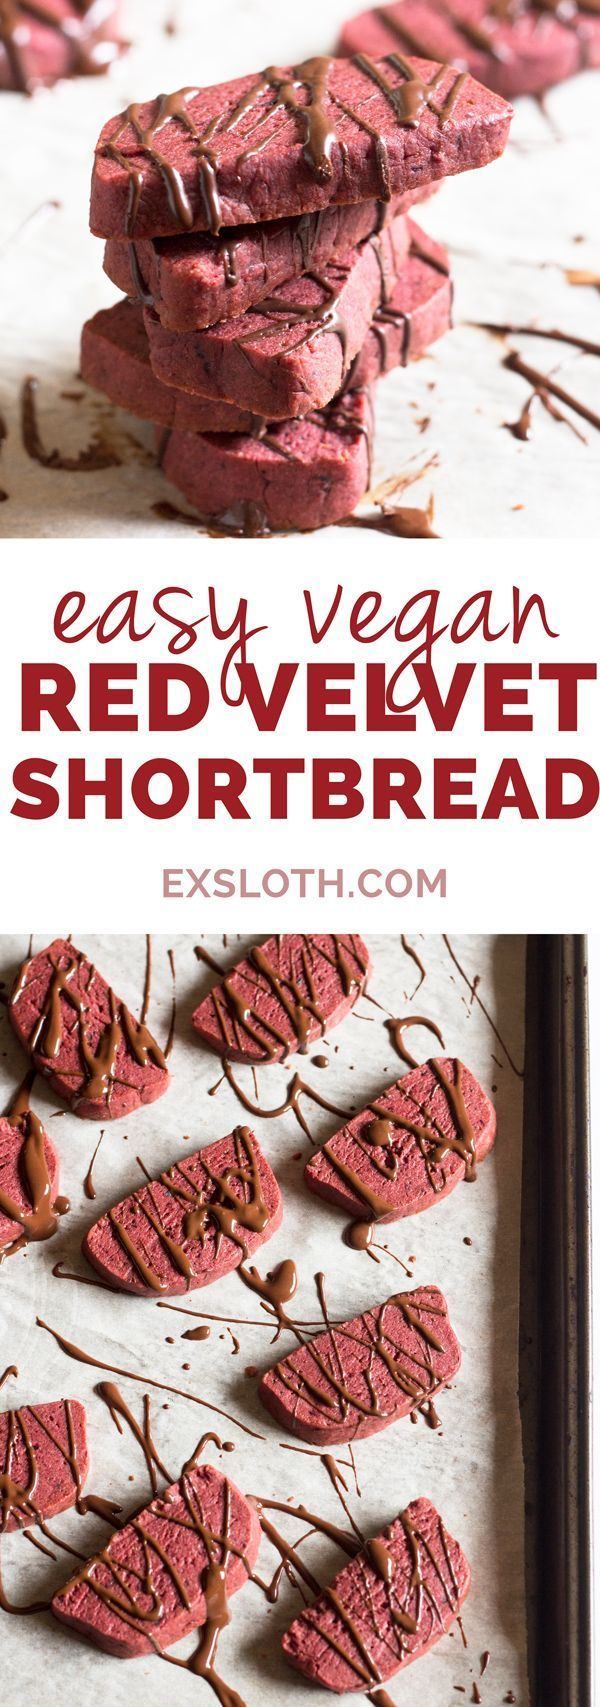 Easy red velvet vegan shortbread cookies (made with coconut oil, not butter). Perfect as a healthy alternative to Christmas cookies or traditional Valentine's Day treats via http://ExSloth.com